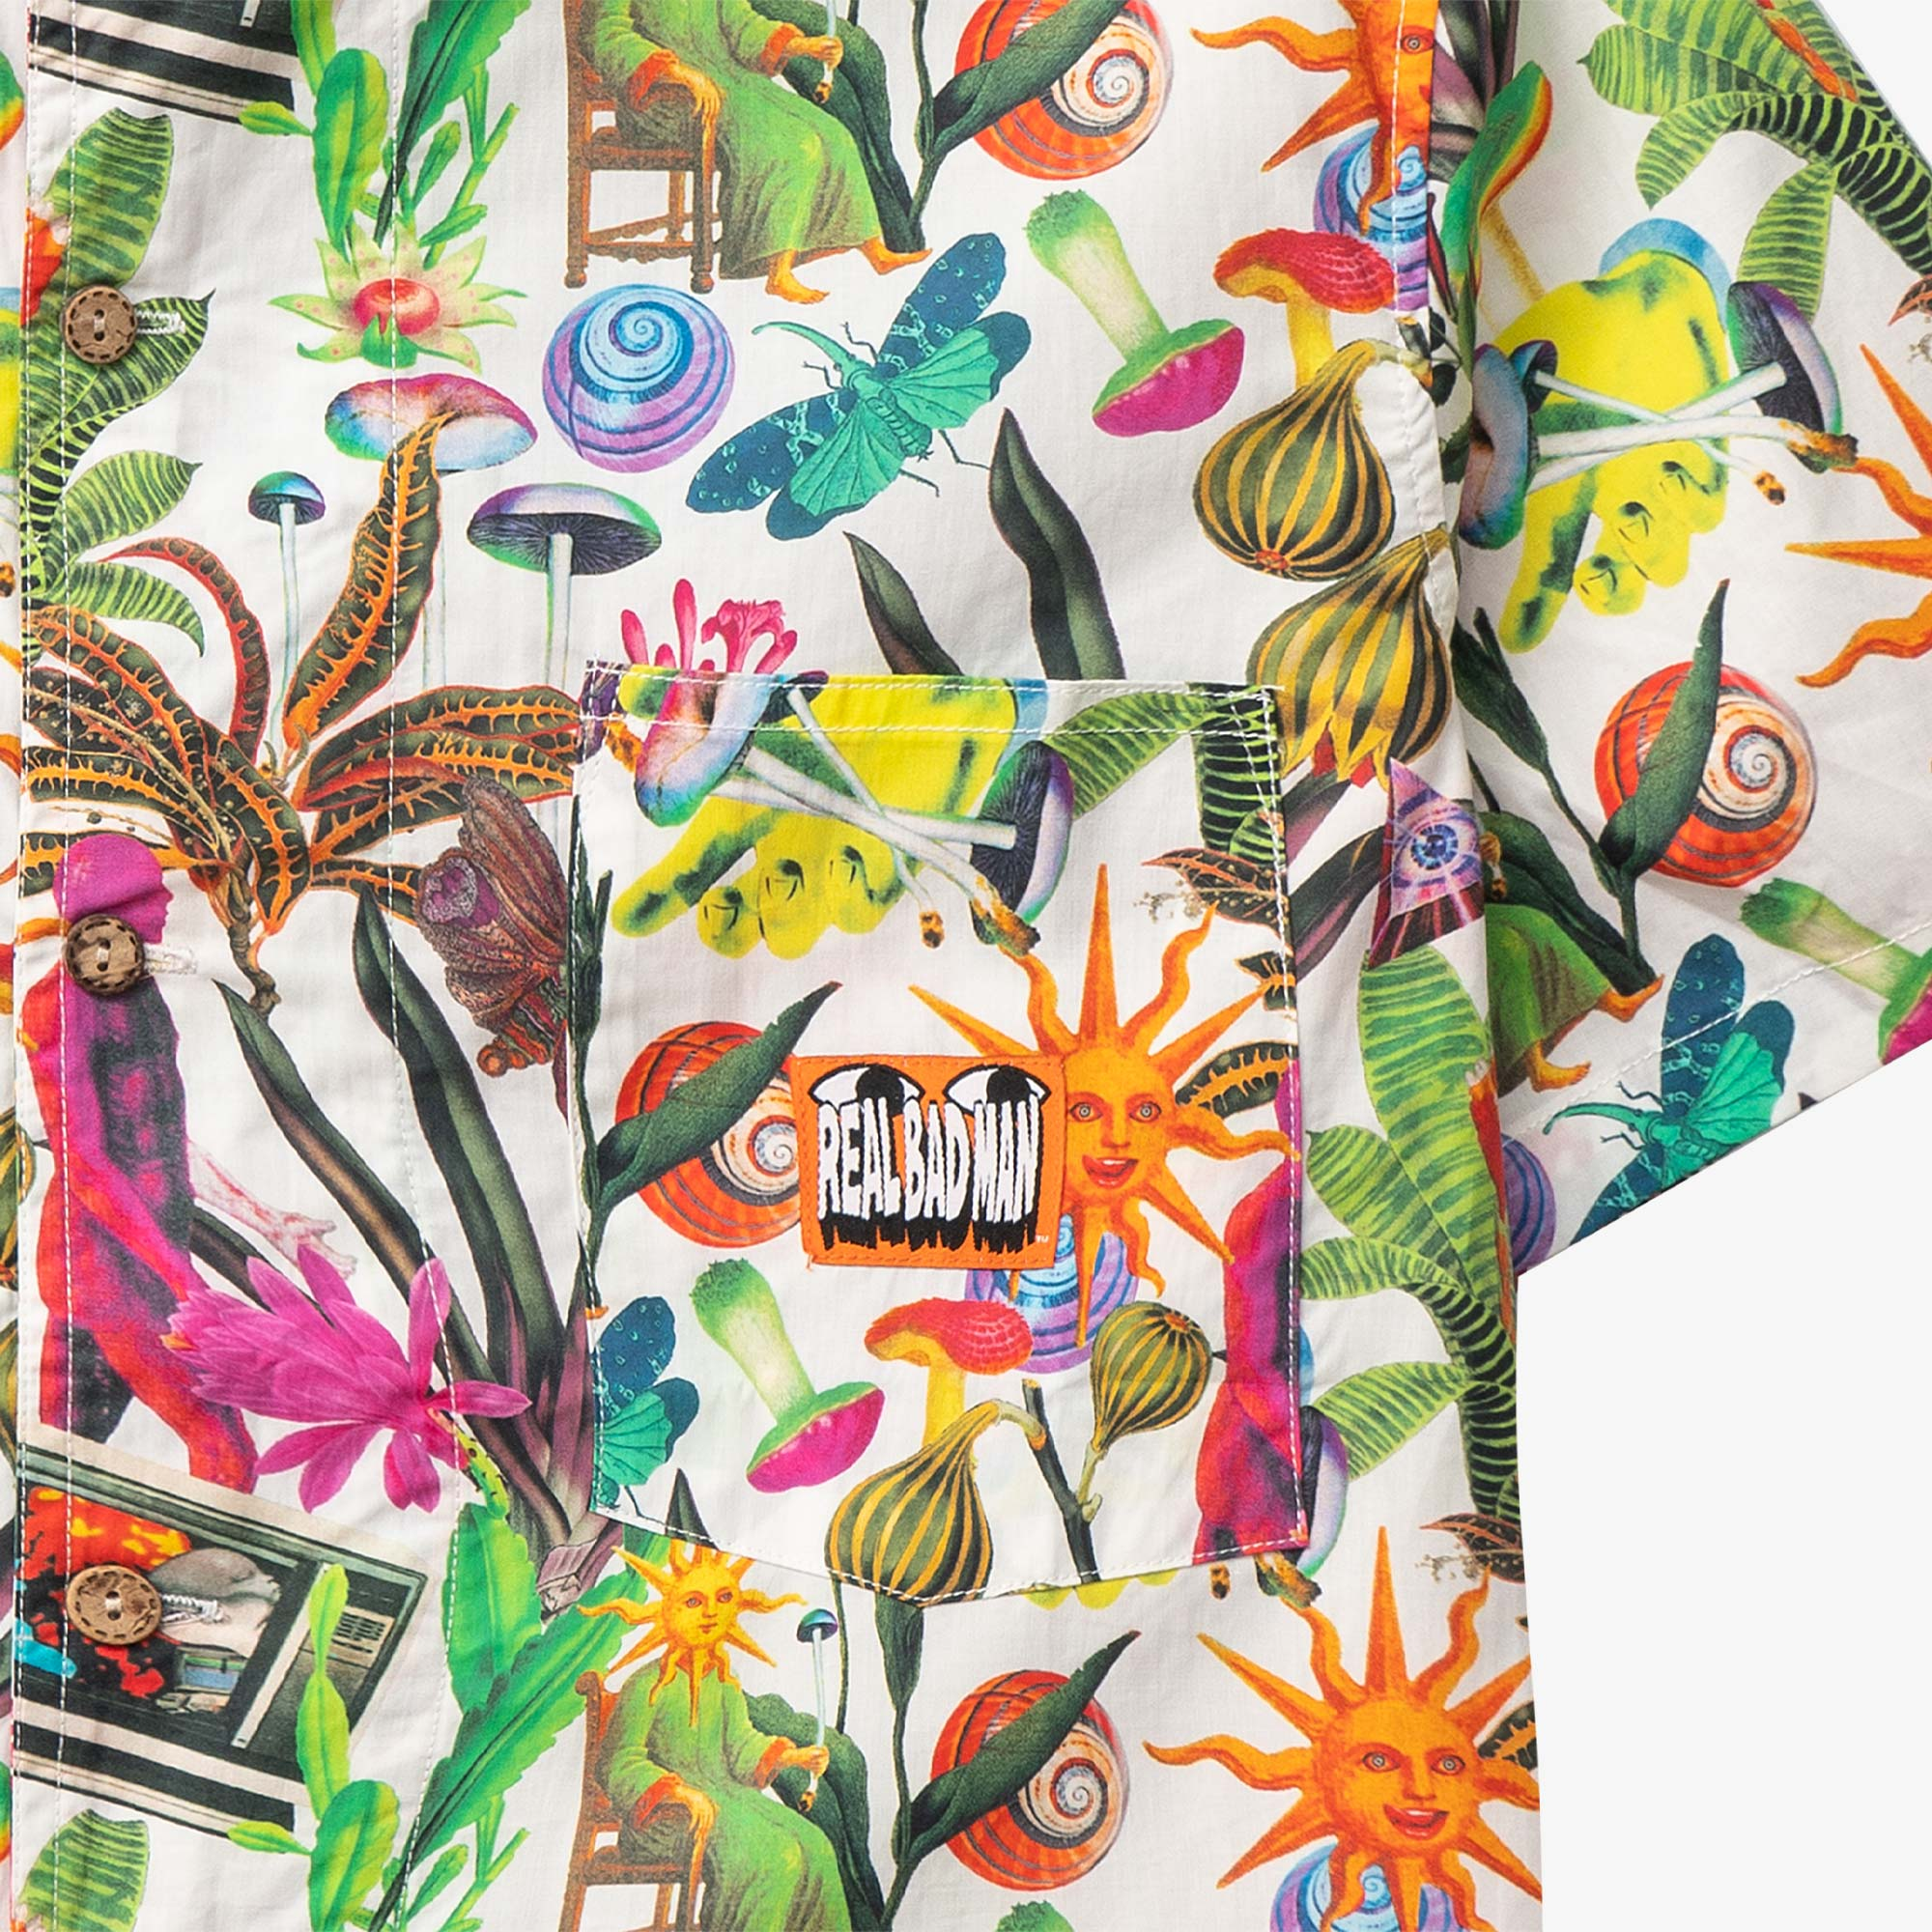 Real Bad Man Psychedelica Vacation Button Down - Black Multi Print 2